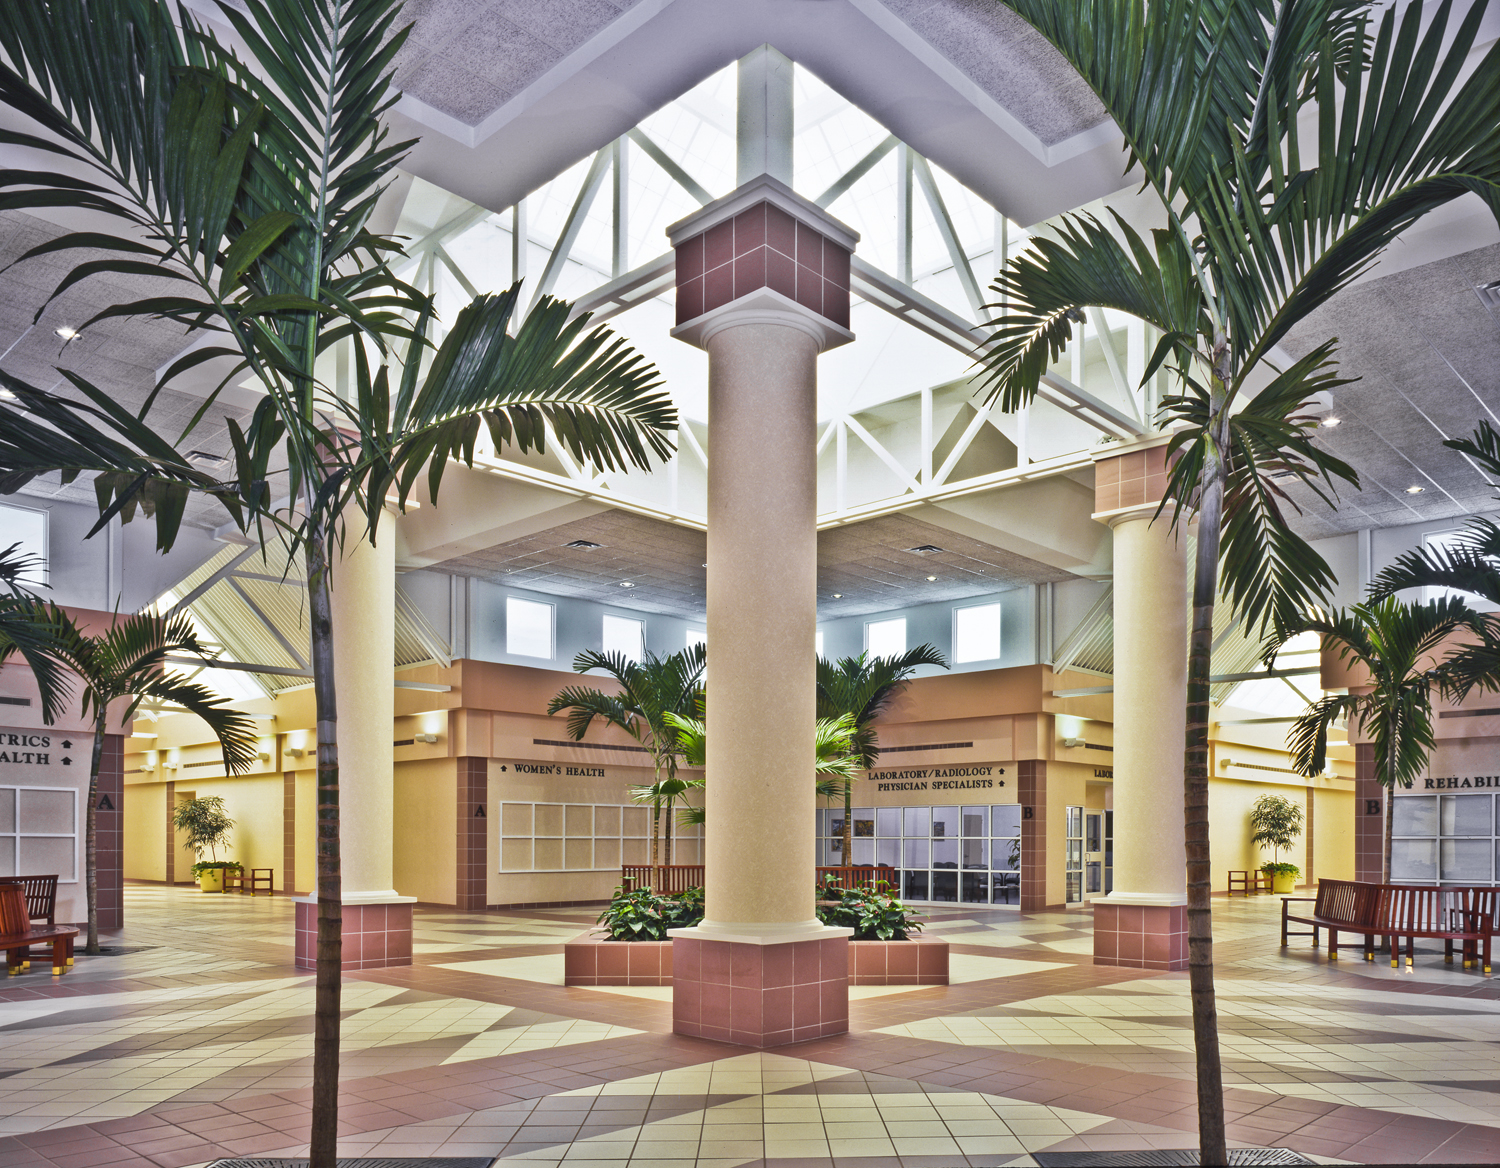 Boyton Beach Medical Center Courtyard copy.jpg